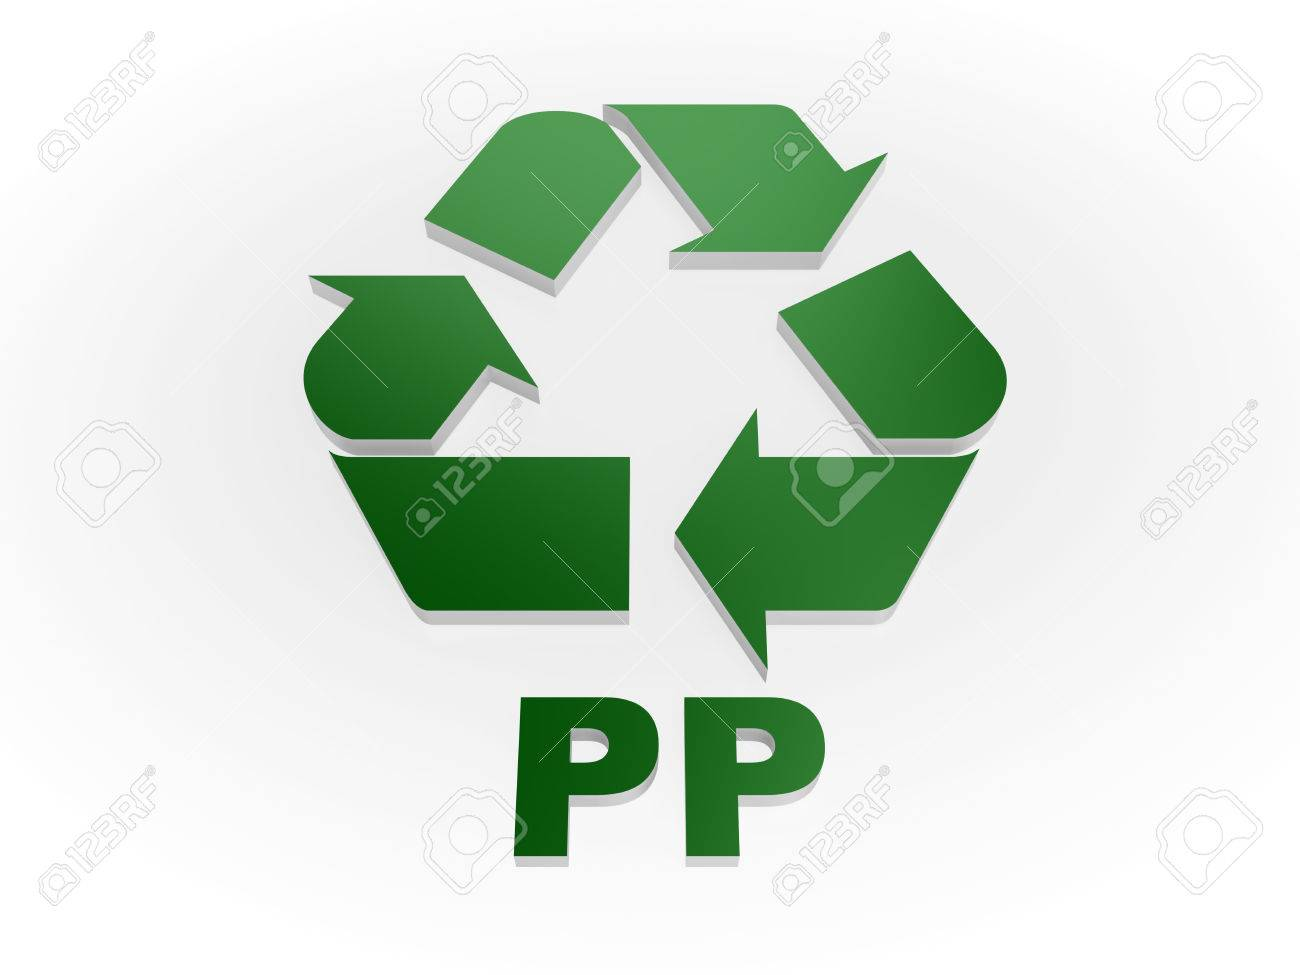 Recycle PP sign Recycling codes - Polypropylene